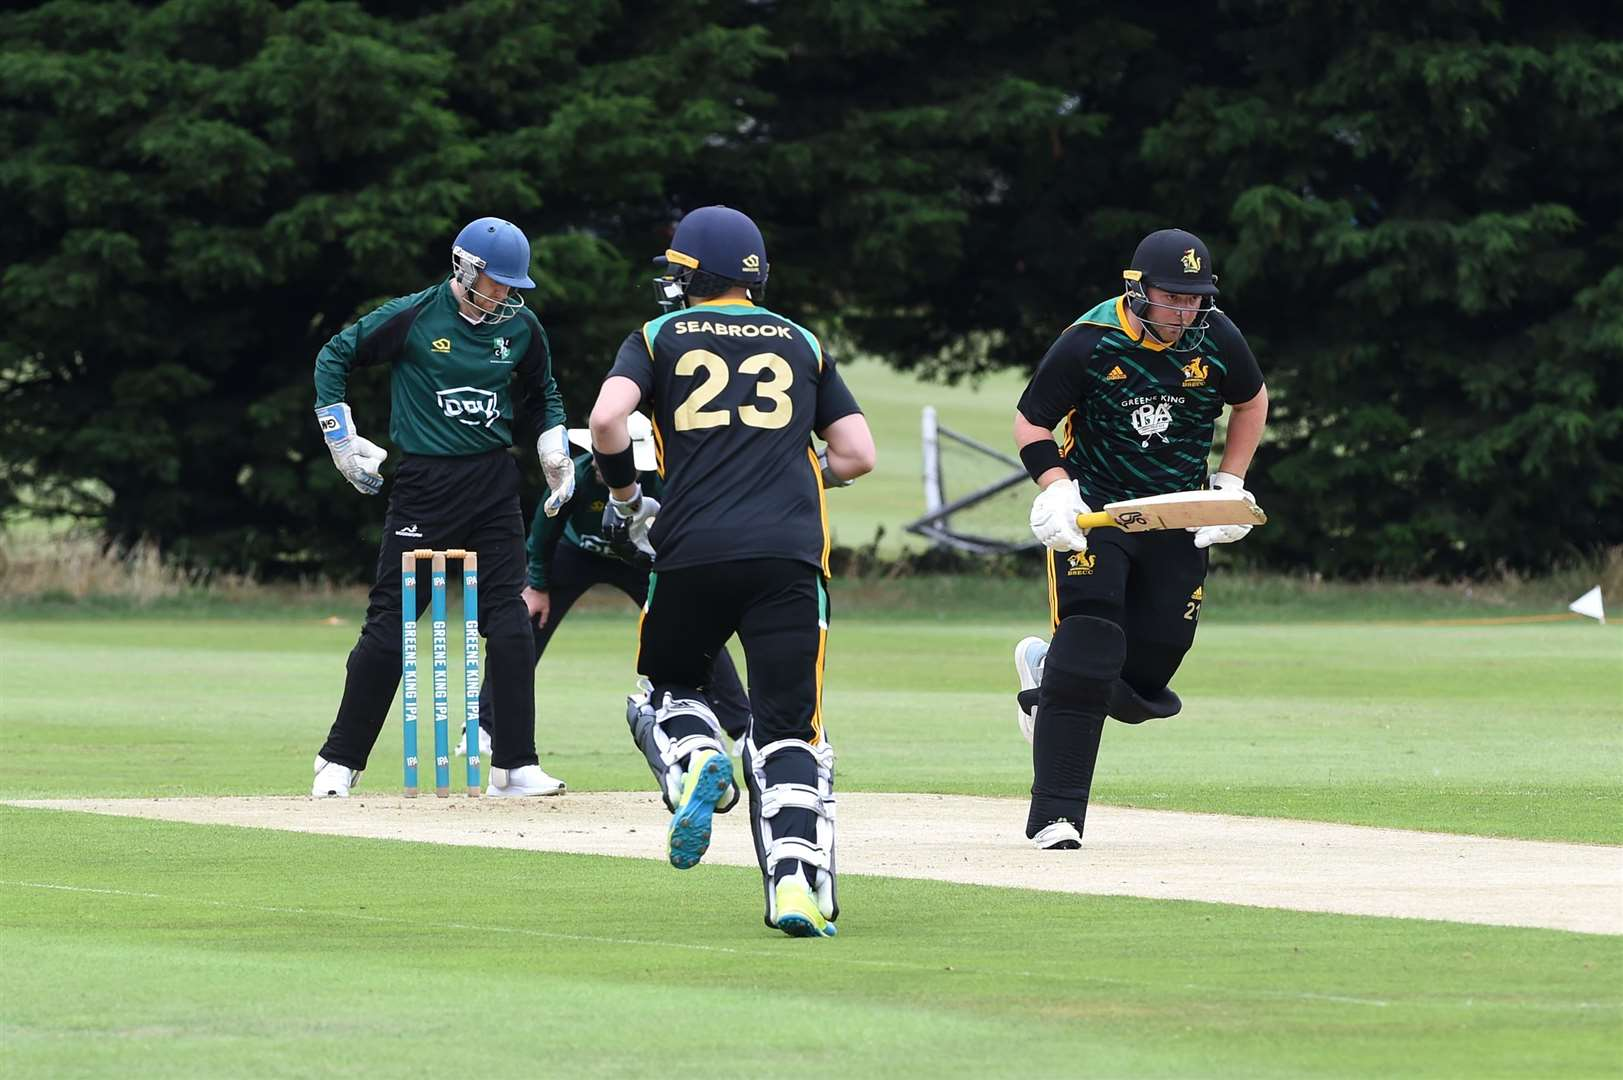 CRICKET - Bury St Edmunds (B) v Burwell & Exning (BE)..Pictured: ...PICTURE: Mecha Morton.... (38778637)